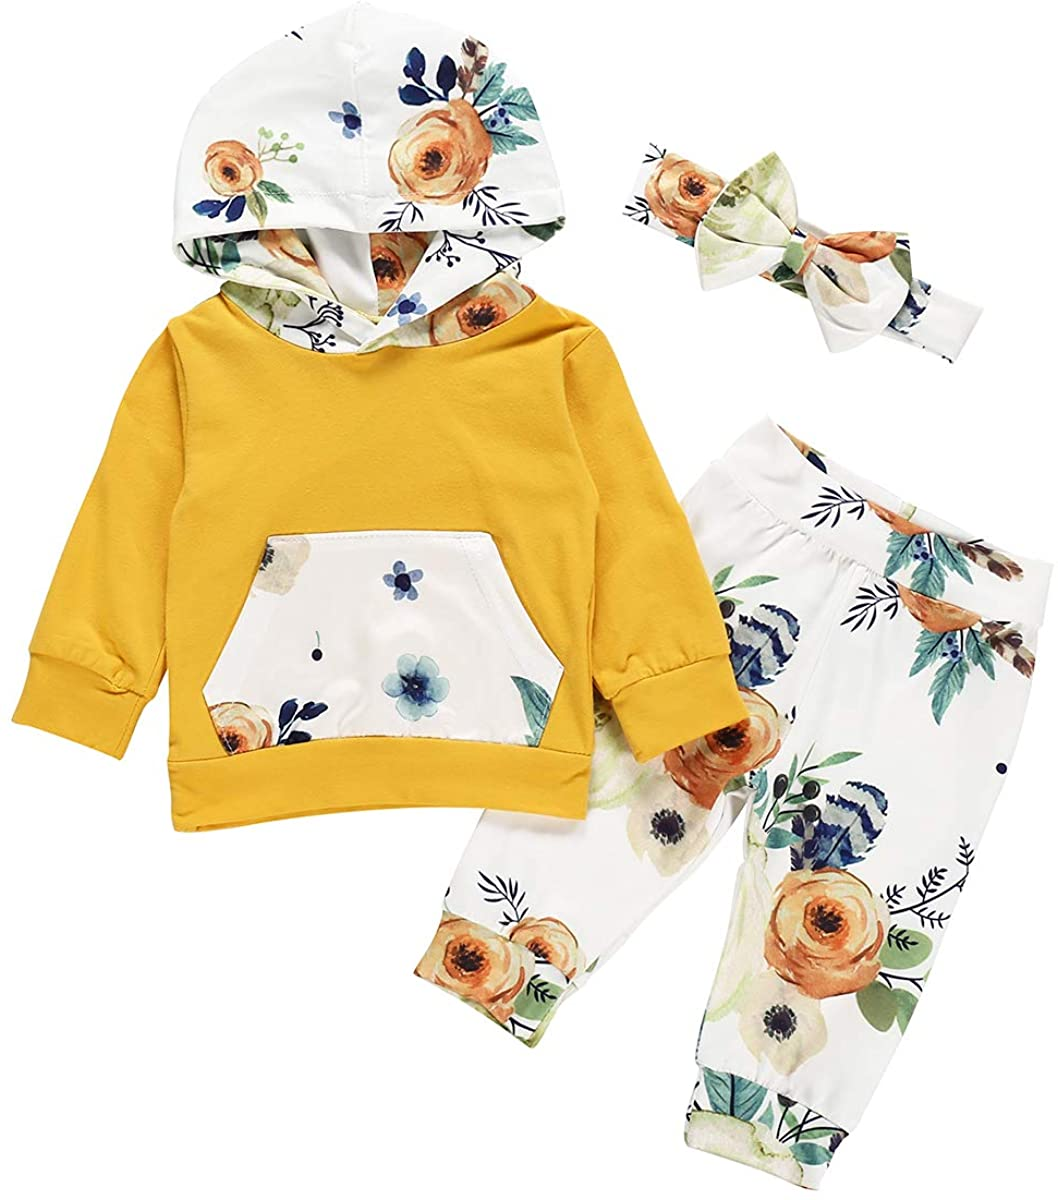 Baby Girl Floral Printed Hoodied Sweatshirt Outfits 2Pcs Long Sleeve Toddler Pocket Clothes Set Top Pants (Yellow, 6-12m)